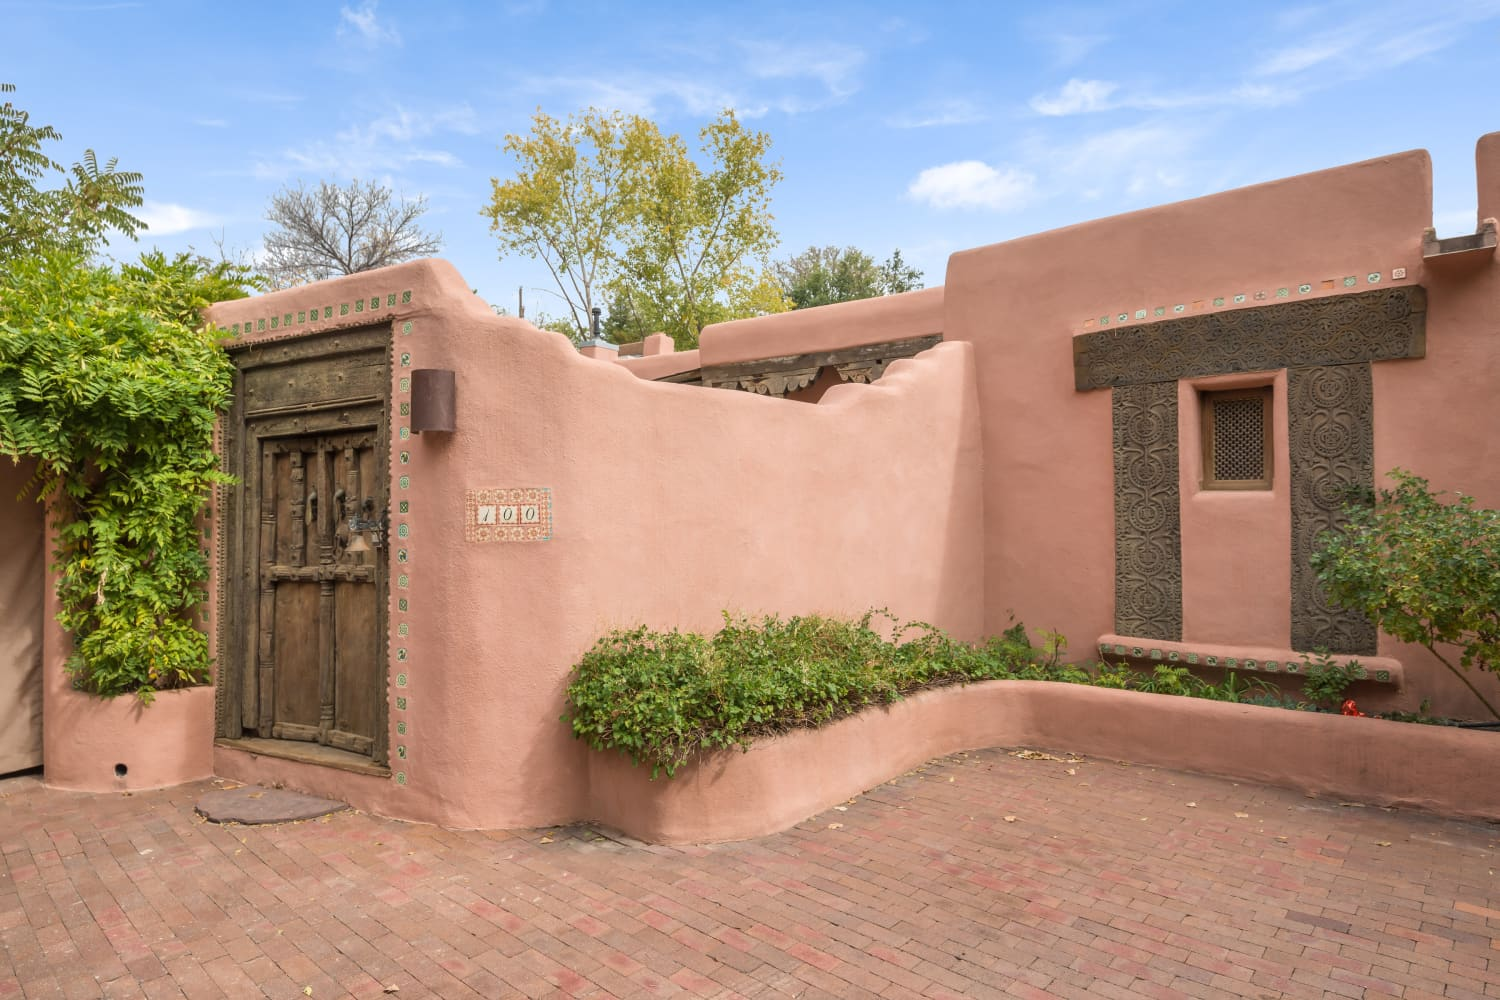 Look Inside: A Magical Middle Eastern-Inspired Adobe in Santa Fe